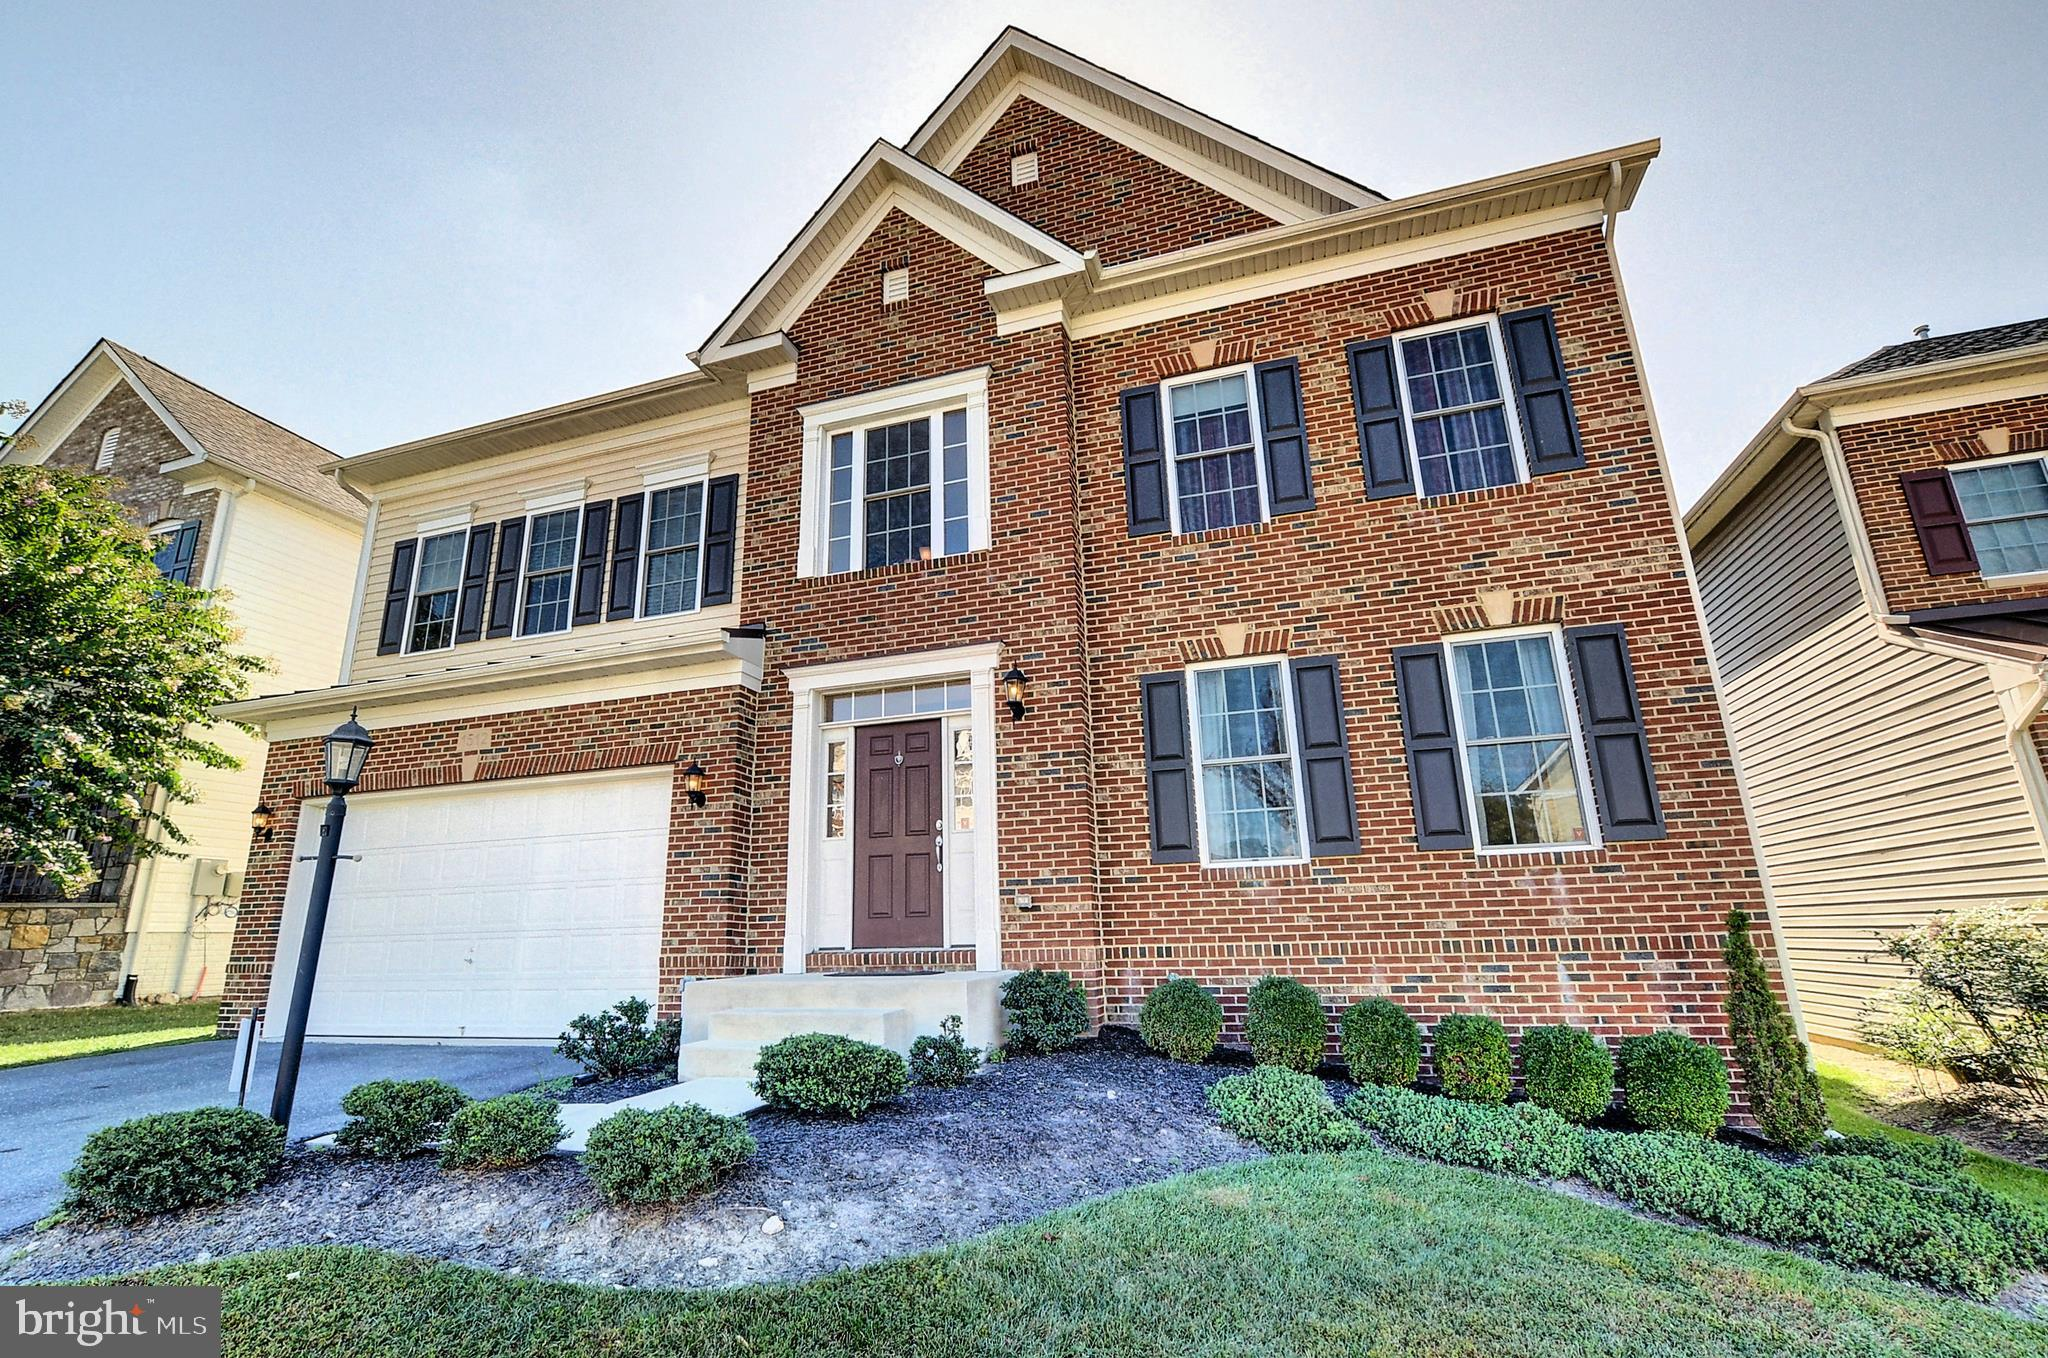 1512 HIDEAWAY PLACE, SILVER SPRING, MD 20906